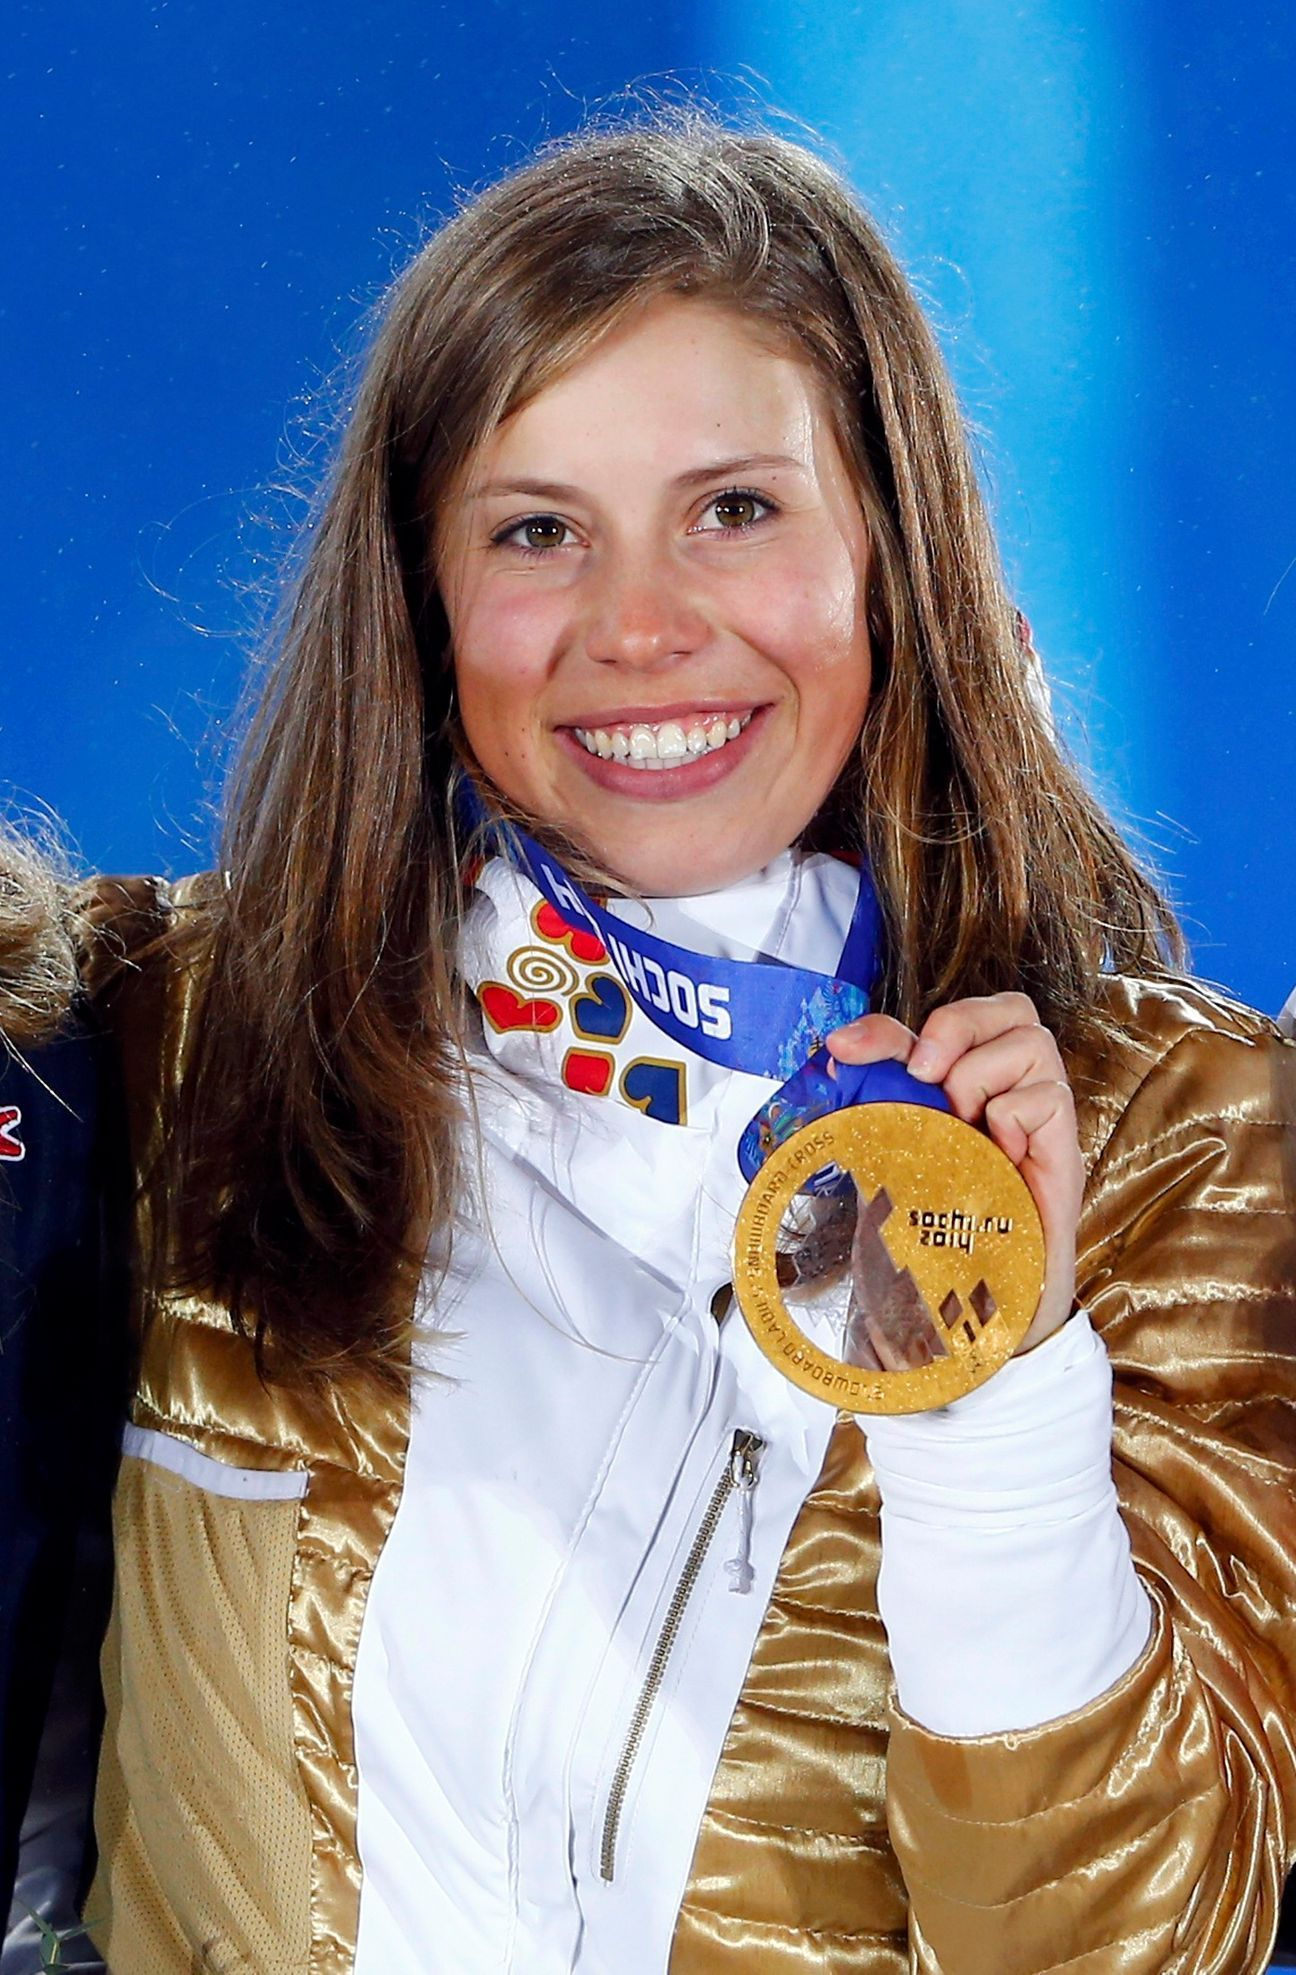 Gold medallist Eva Samkova of the Czech Republic poses during the victory ceremony for the women's snowboard cross competition at the 2014 Sochi Winter Olympics